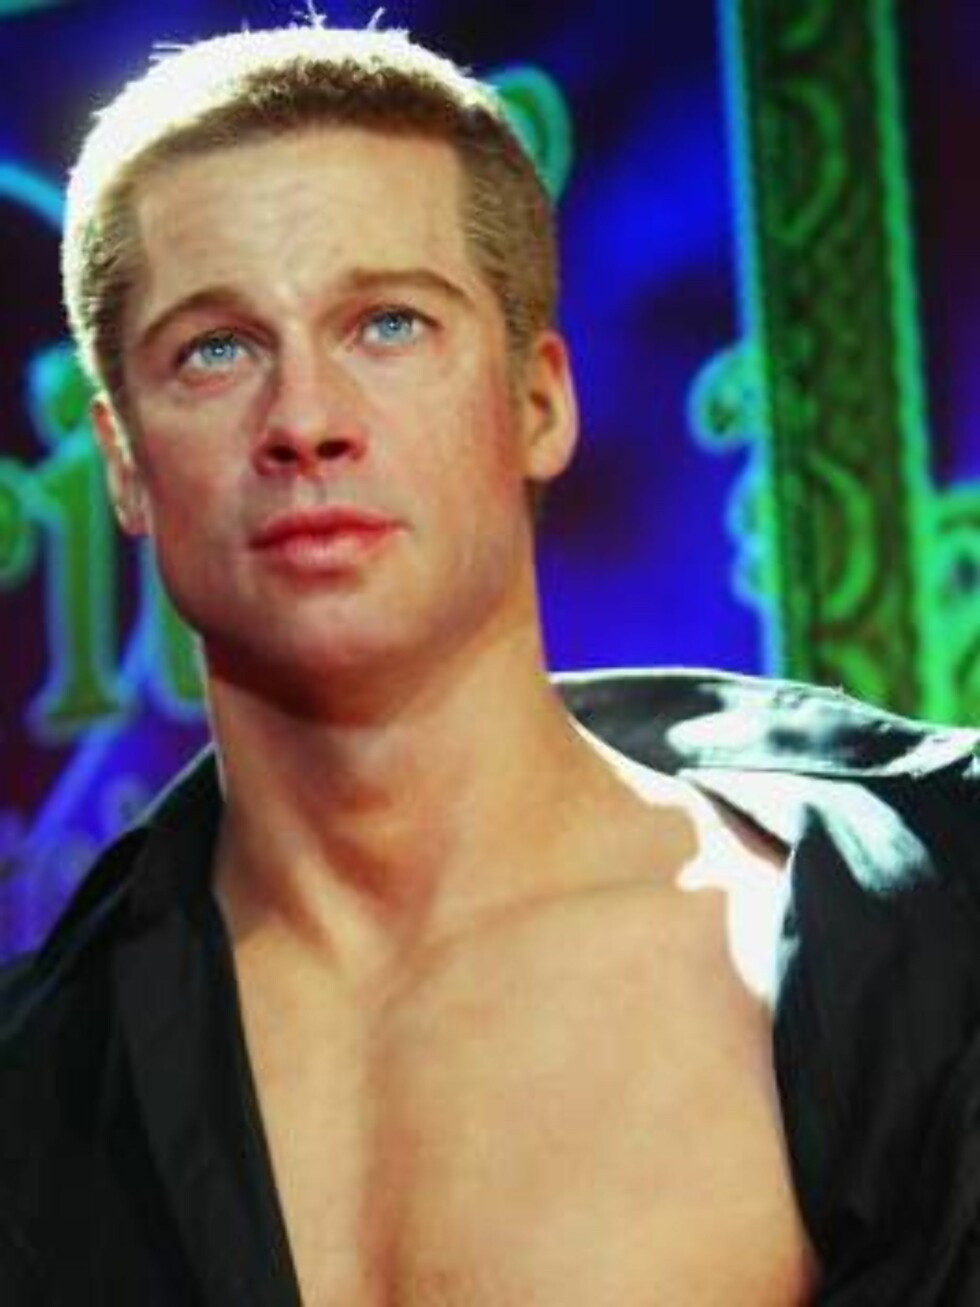 LONDON -  AUGUST 18:  New waxwork of actor Brad Pitt is unveiled at Madame Tussauds on August 18, 2004 in London. The new models of Aniston and Pitt both come with squeezable bottoms and stroke-able silicone chests, and all four models form part of a new Foto: All Over Press